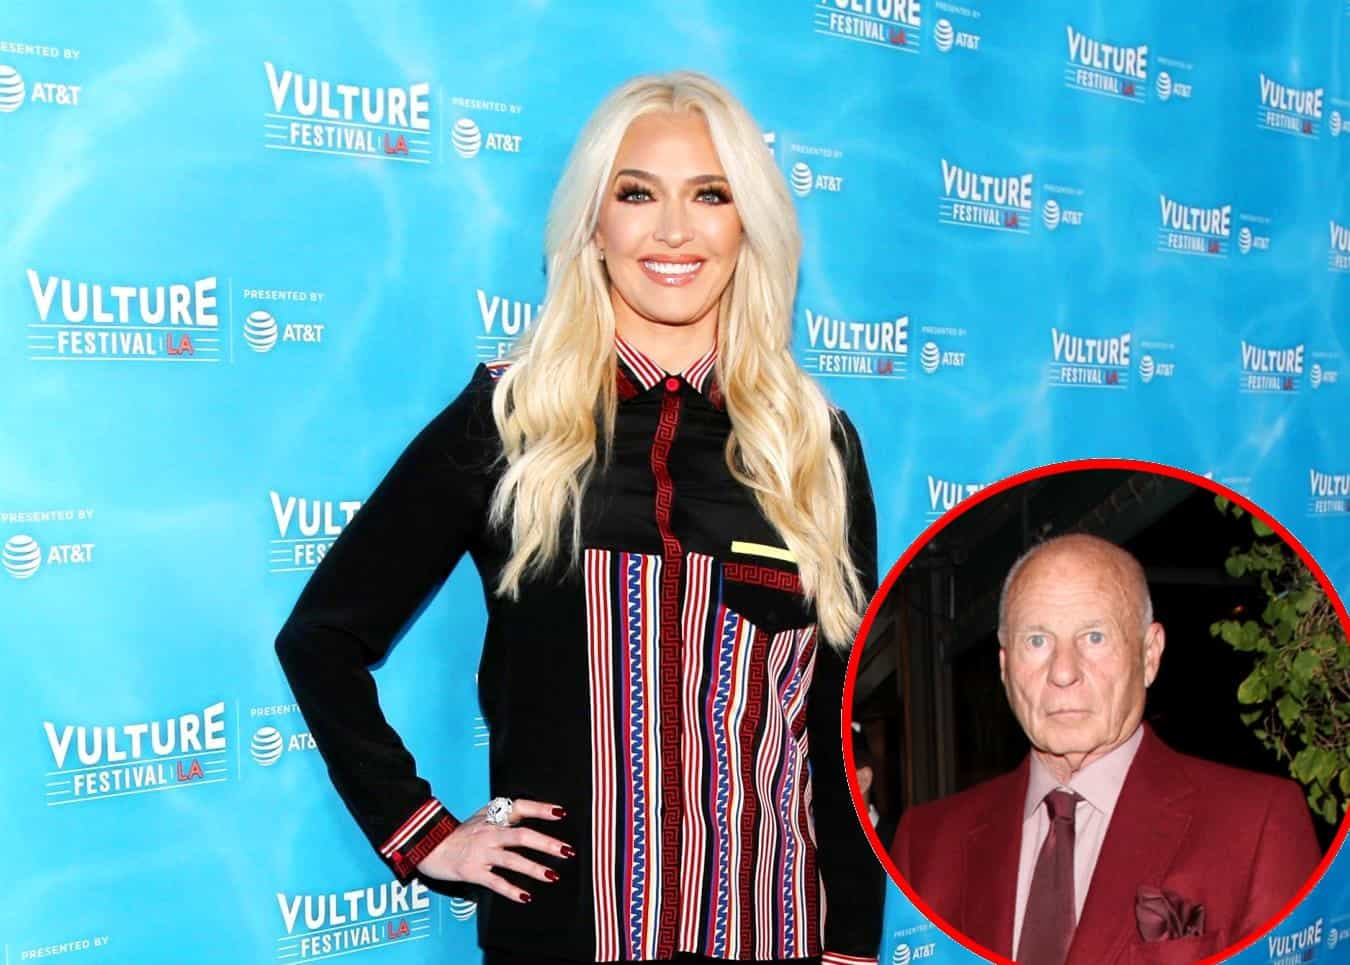 Judge Warns Erika Jayne Not To Sell Frozen Assets Or Community Property Amid Husband Tom Girardi's Involuntary Bankruptcy, Plus Photo of RHOBH Star as She's Spotted Without Wedding Ring for First Time Since Divorce Filing